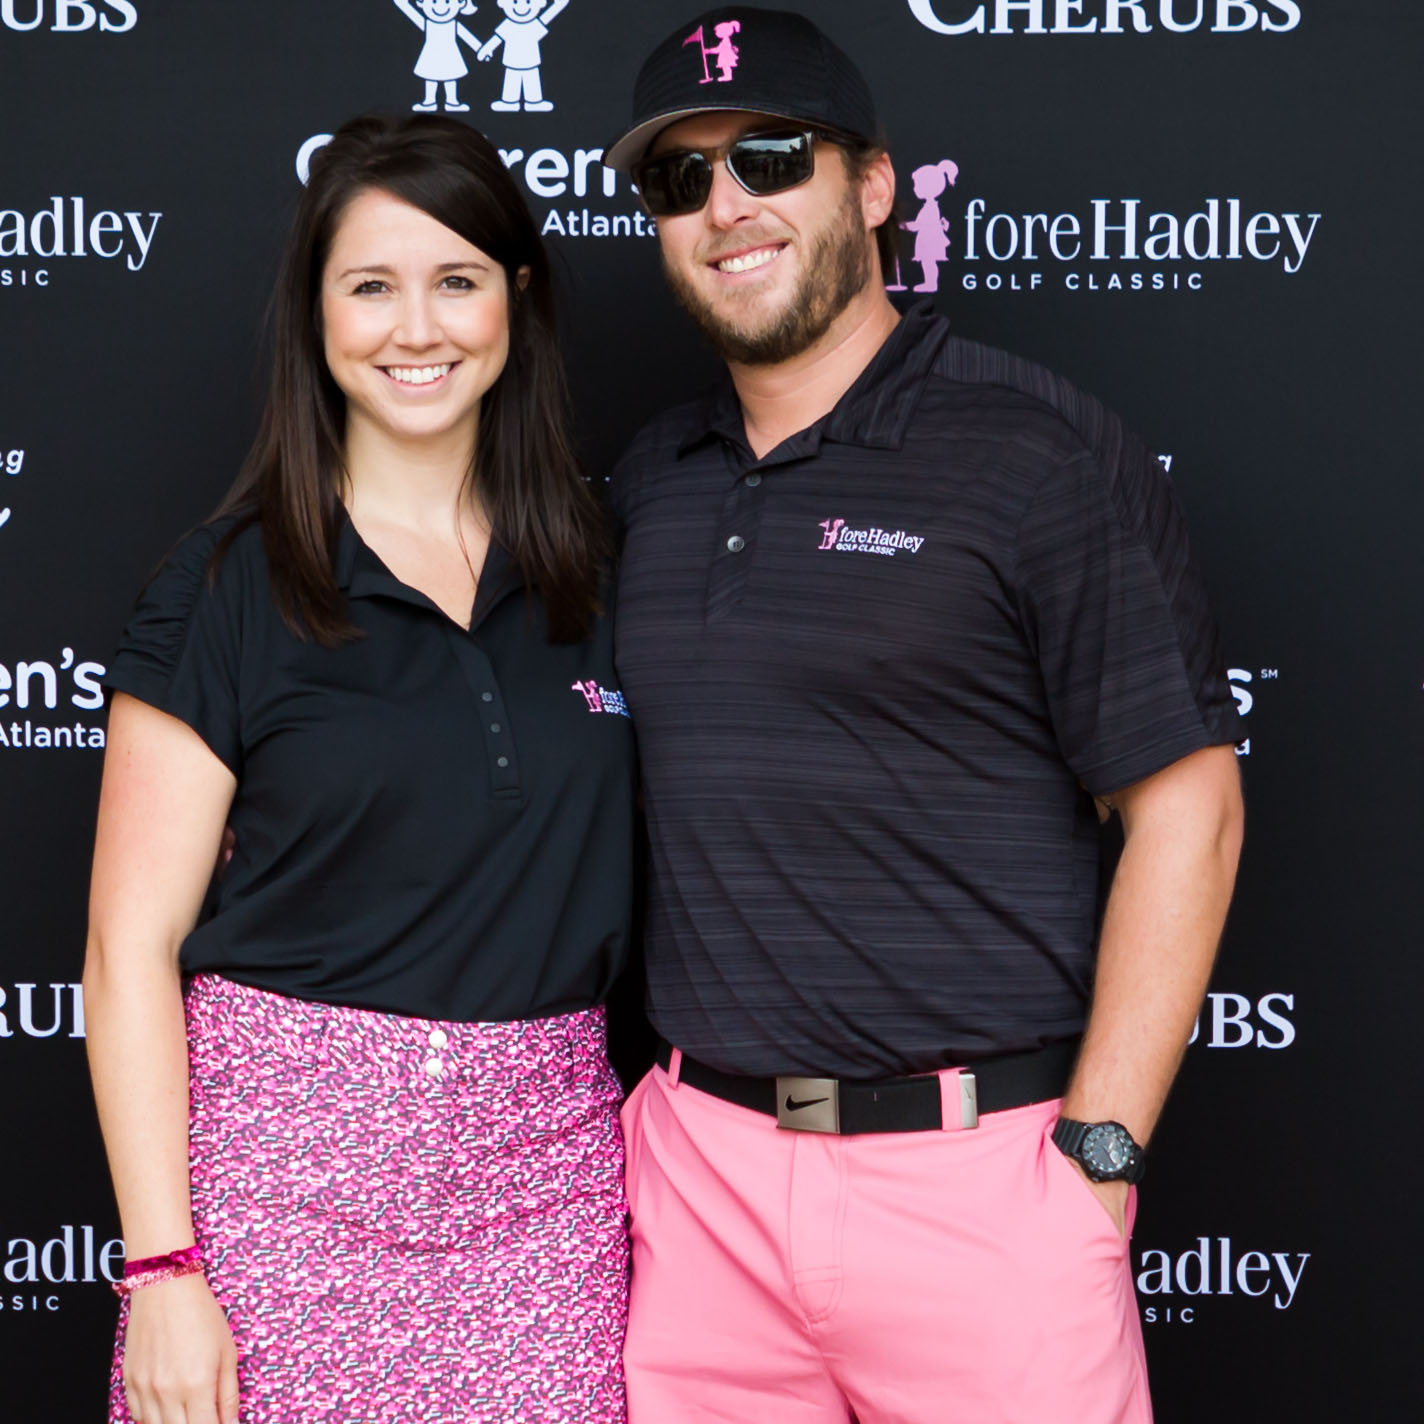 Kate & Ryan - Founders of the ForeHadley Foundation.